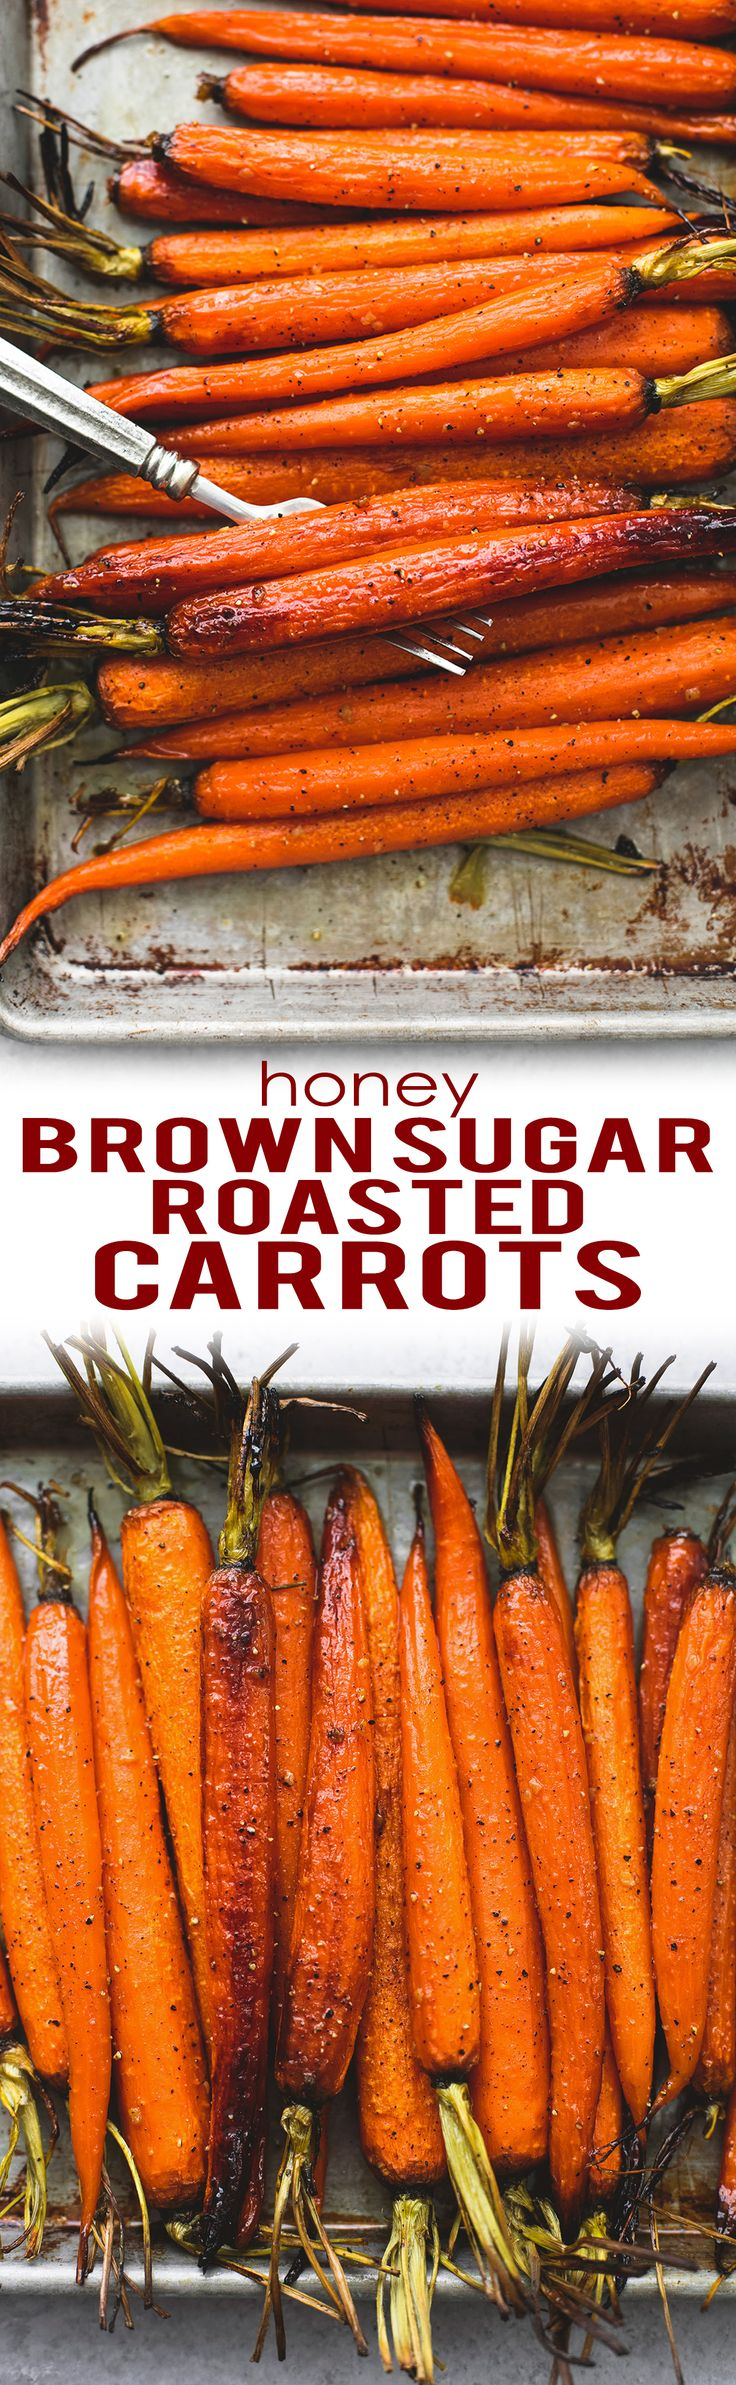 Slow Cooker: Honey Brown Sugar Roasted Carrots - Creme De La Cr...